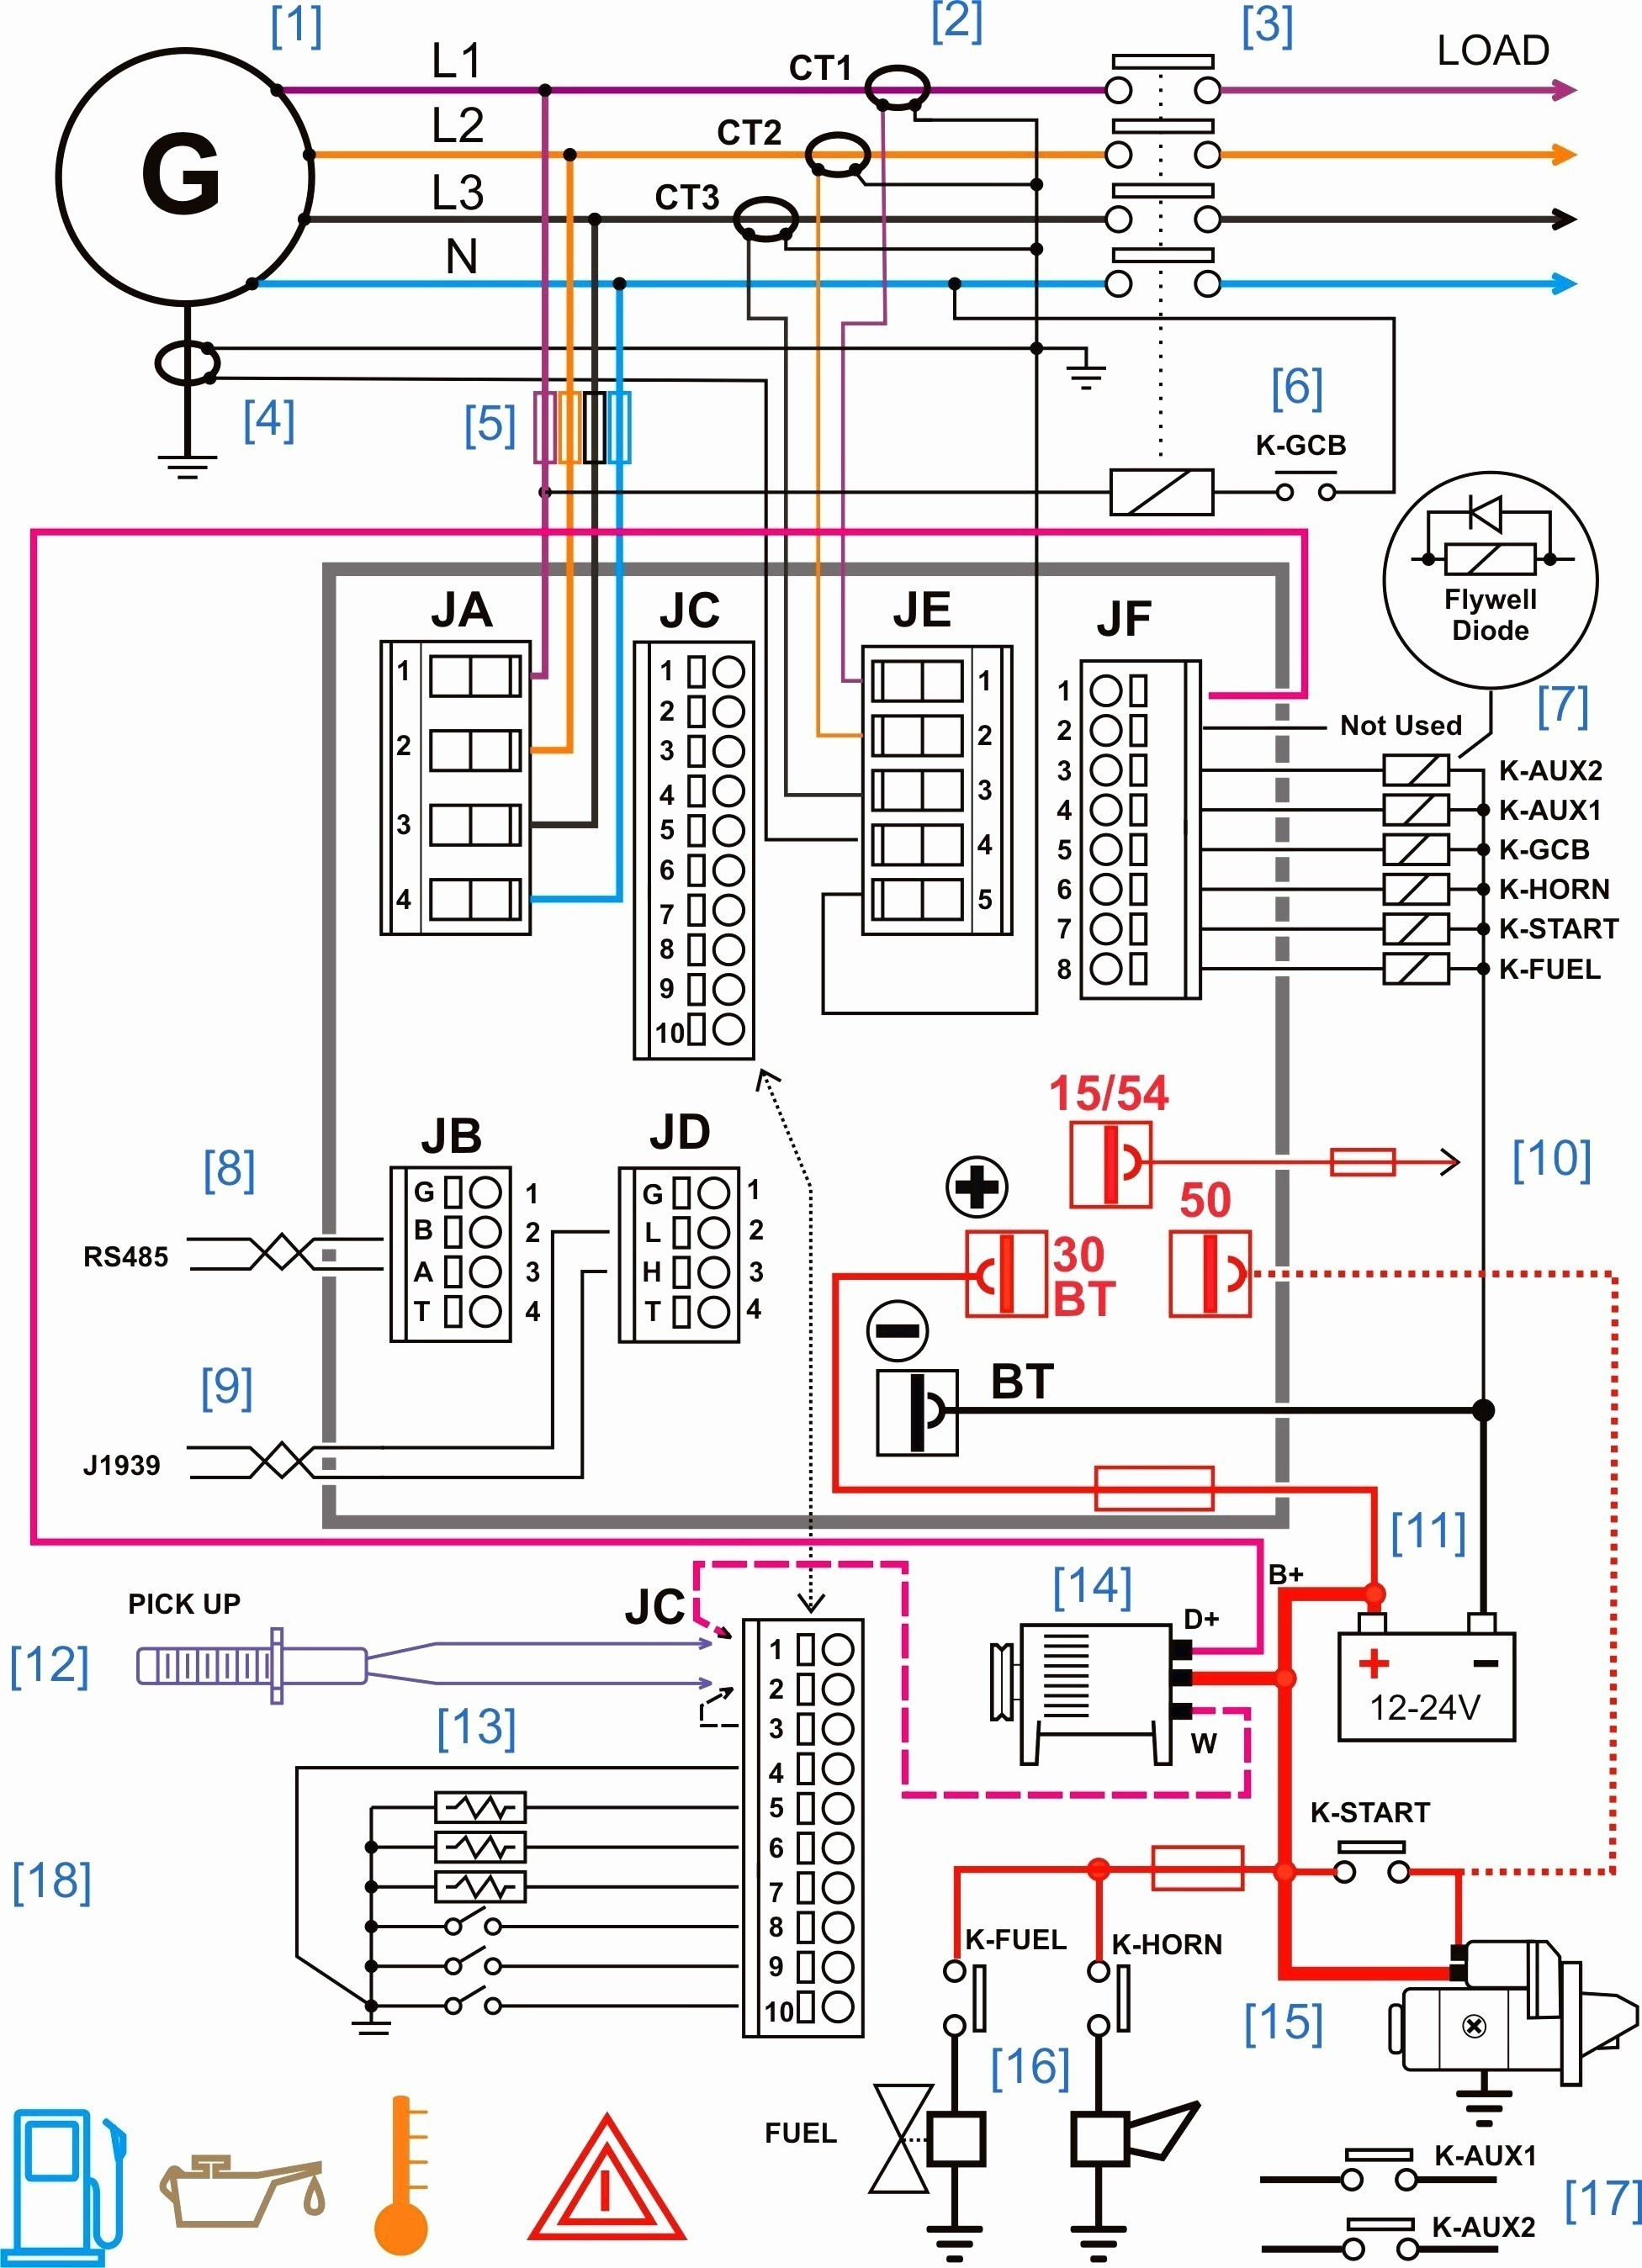 Wiring Diagram for Car Stereo System Save Audi A4 Cd Player Wiring Diagram Of Wiring Diagram for Car Stereo System